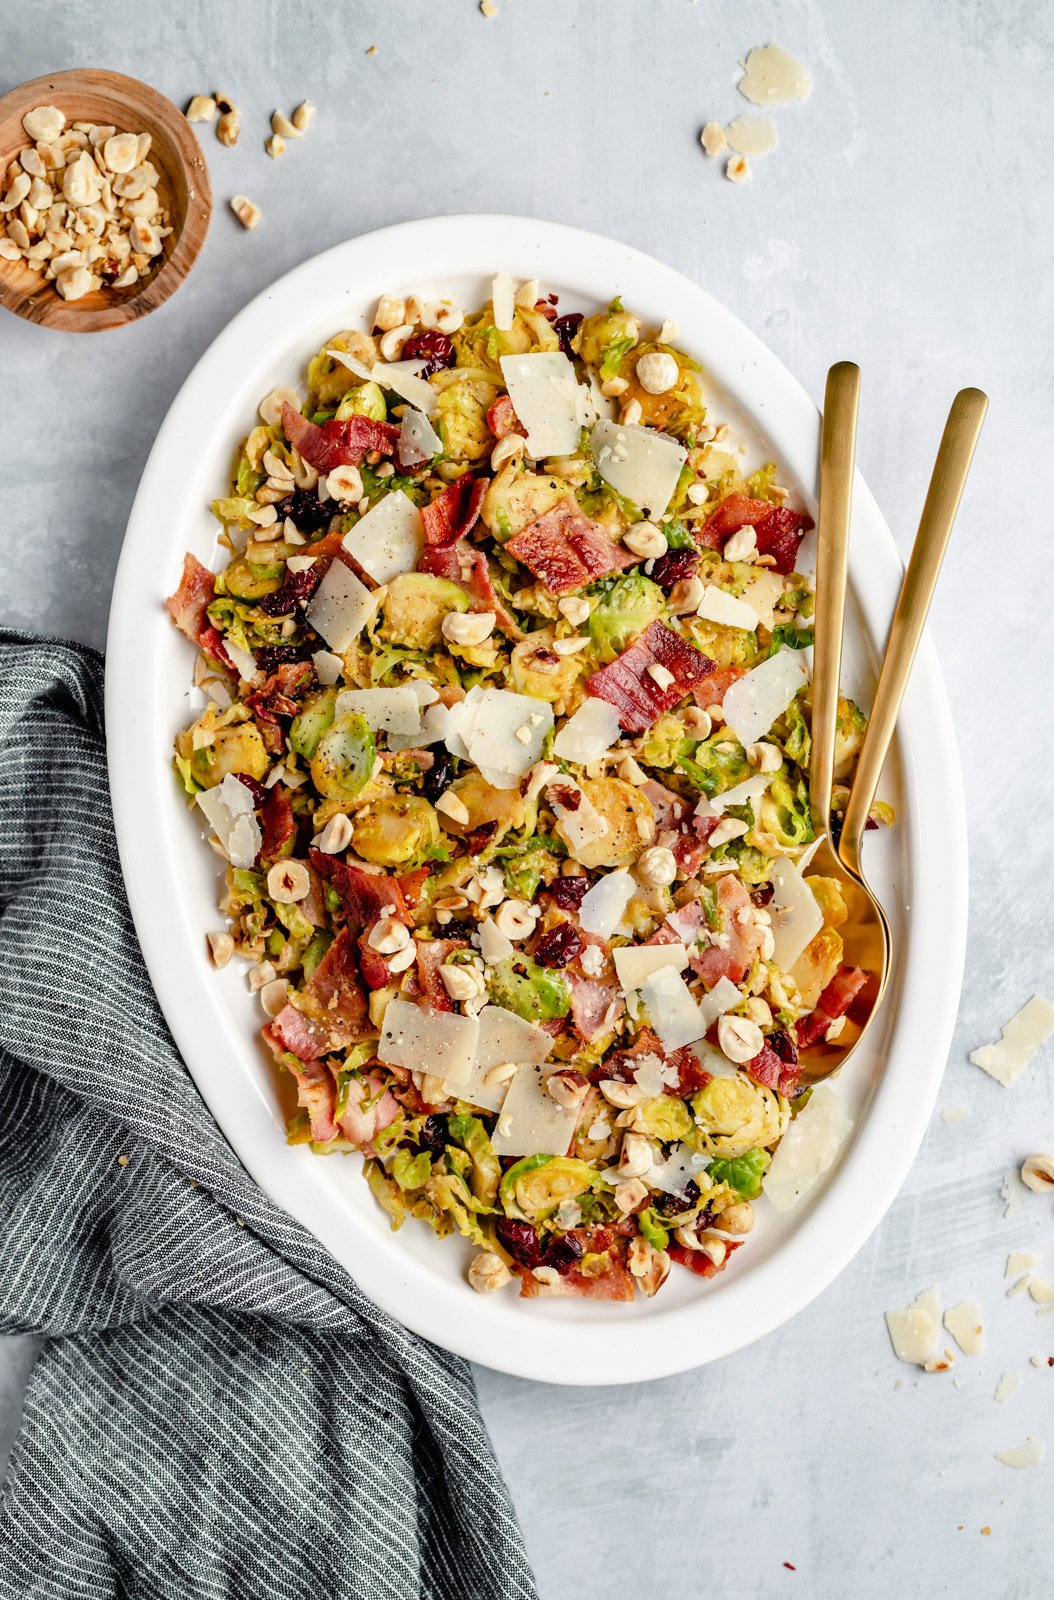 low carb warm brussels sprouts salad on a platter with serving utensils